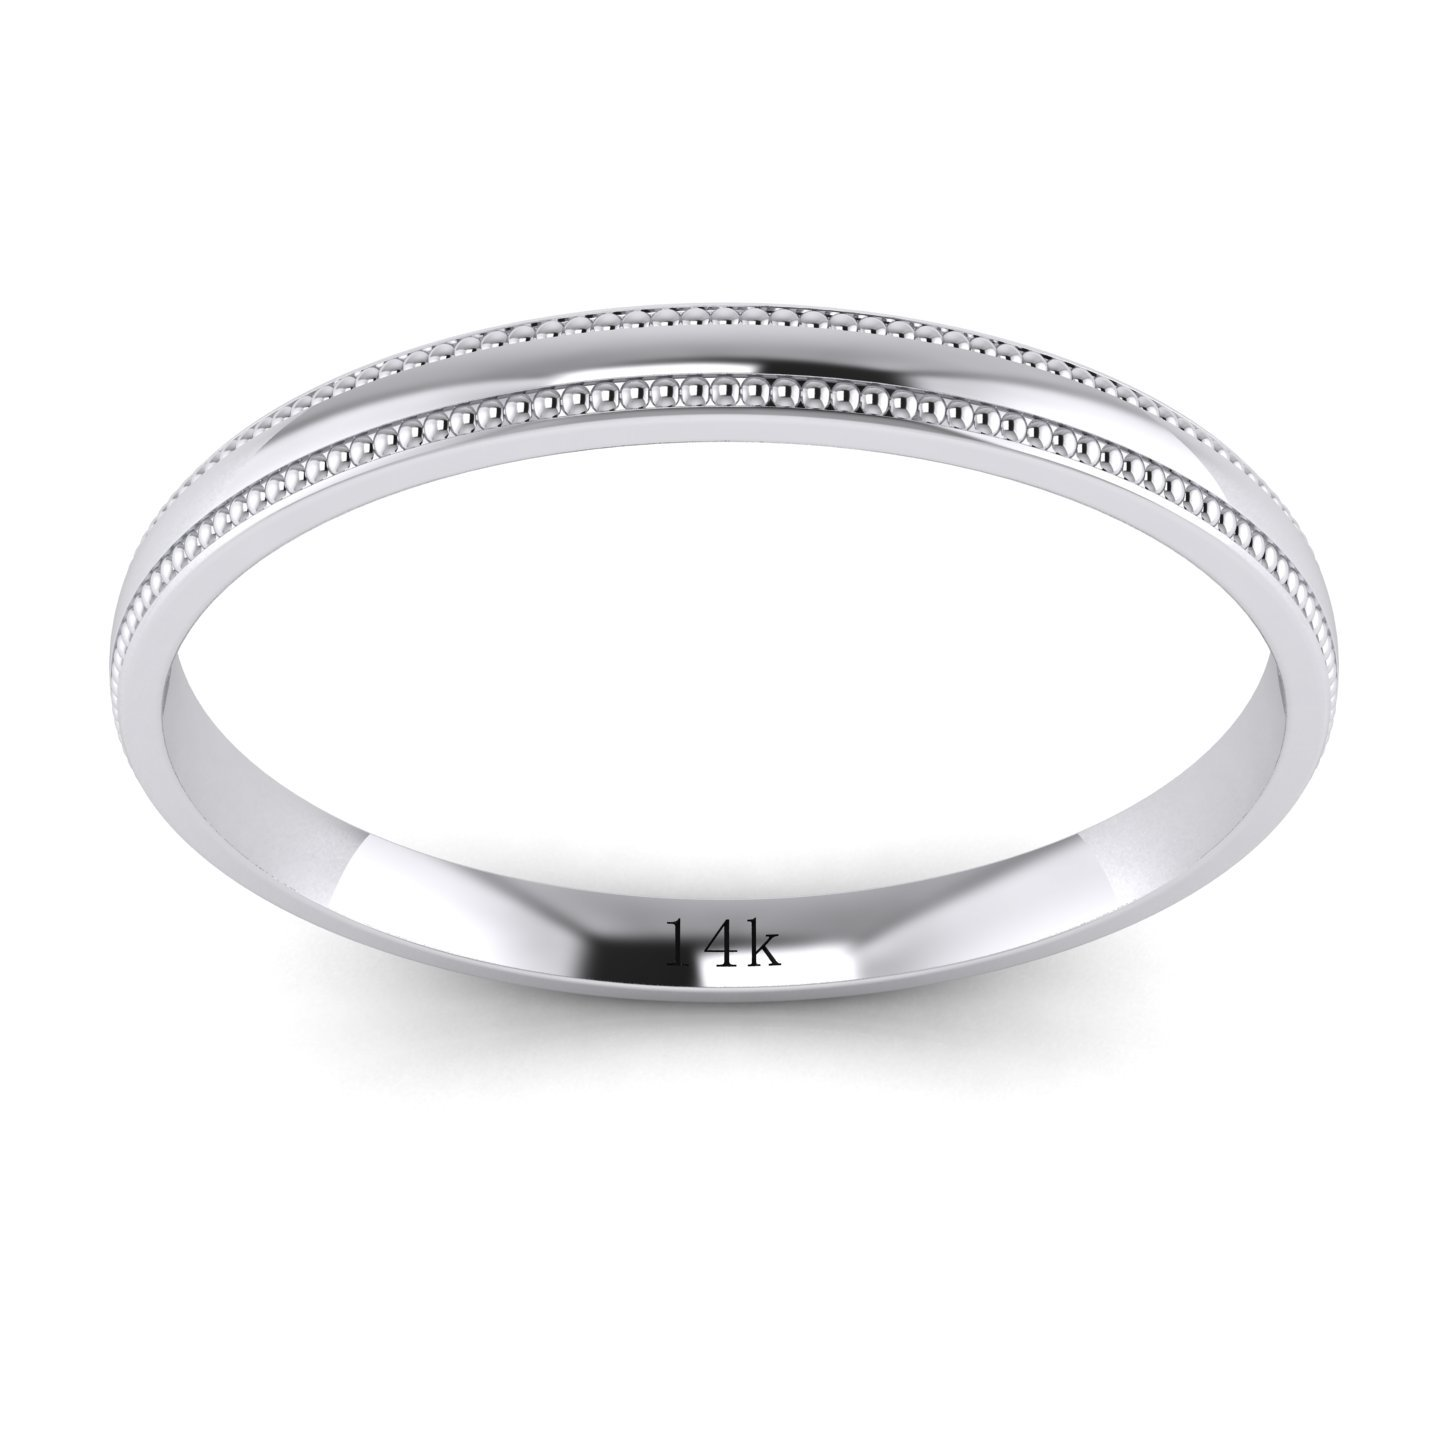 LANDA JEWEL Unisex 14k White Gold 2mm Light Court Shape Comfort Fit Polished Wedding Ring Milgrain Band (6) by LANDA JEWEL (Image #2)